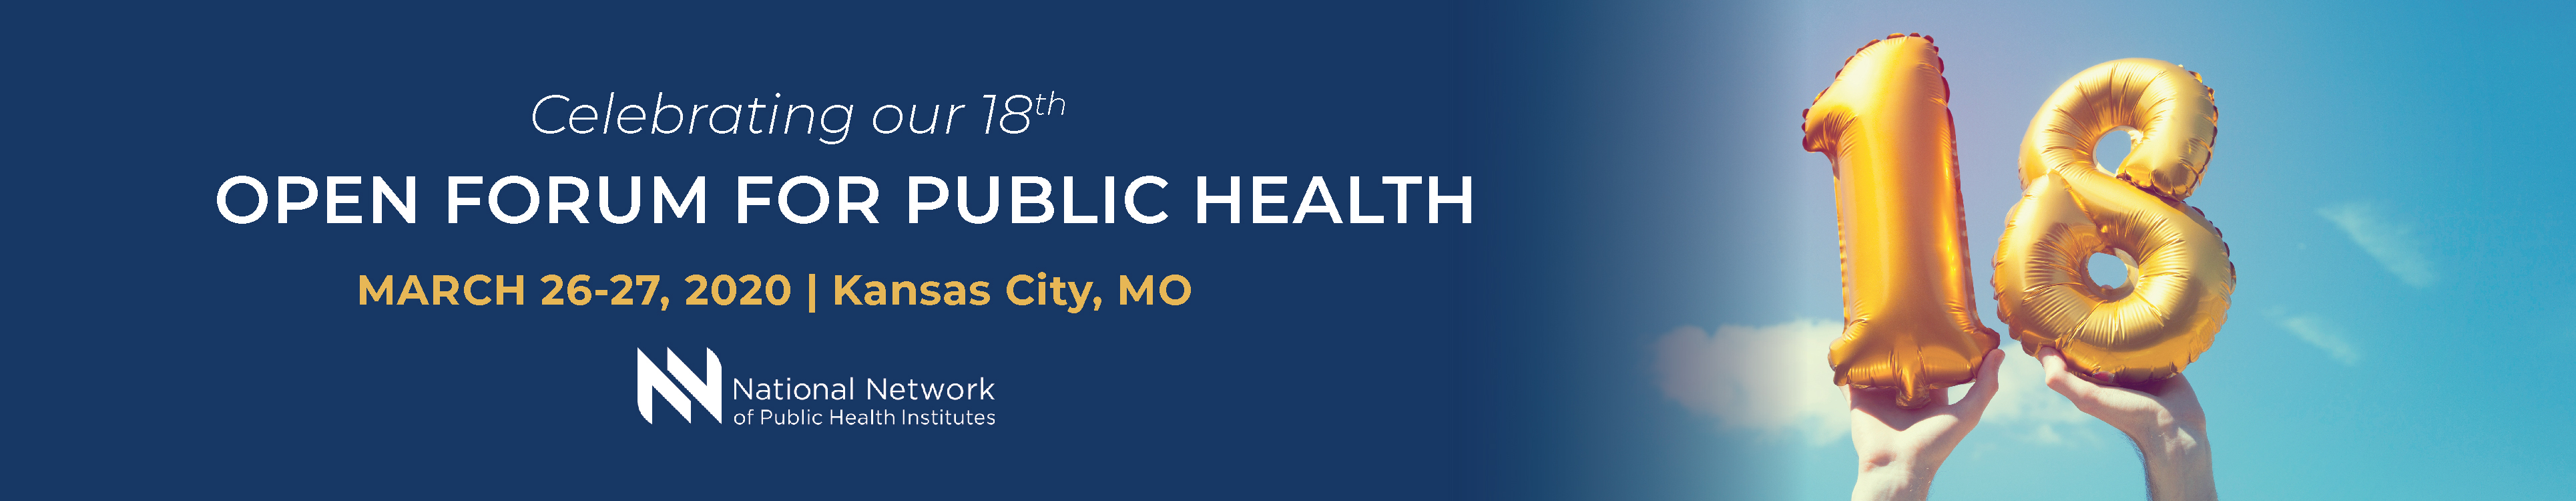 Spring 2020 Open Forum for Public Health